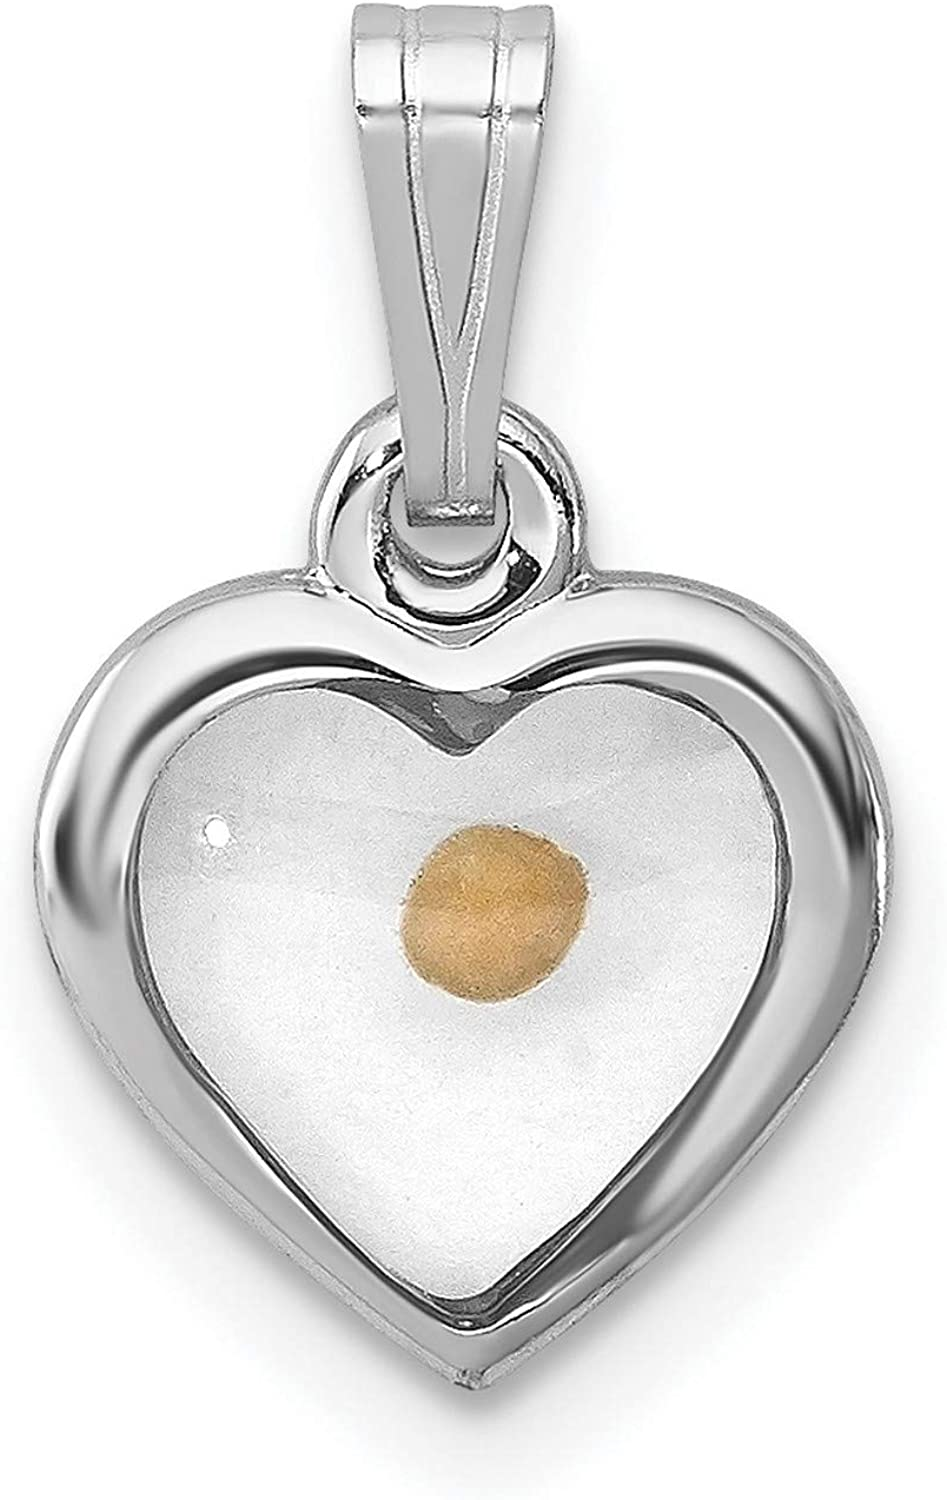 unisex Sterling Silver Small Heart New arrival with Mustard Seed mm 13 x Pendant 15